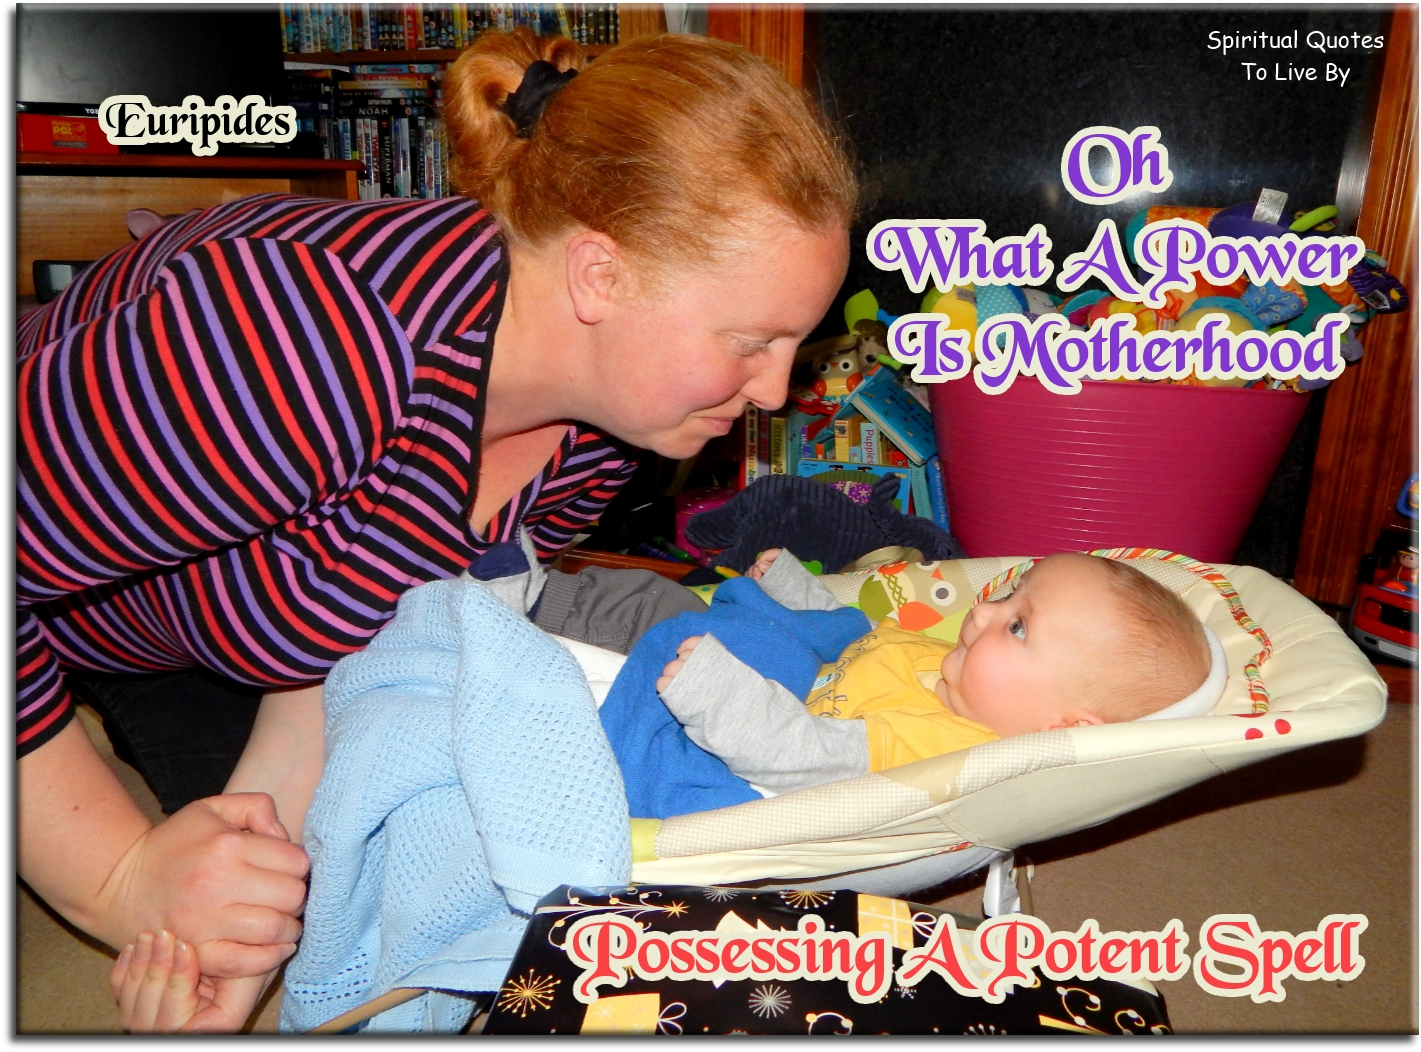 Euripides quote: Oh, what a power is motherhood, possessing a potent spell. - Spiritual Quotes To Live By